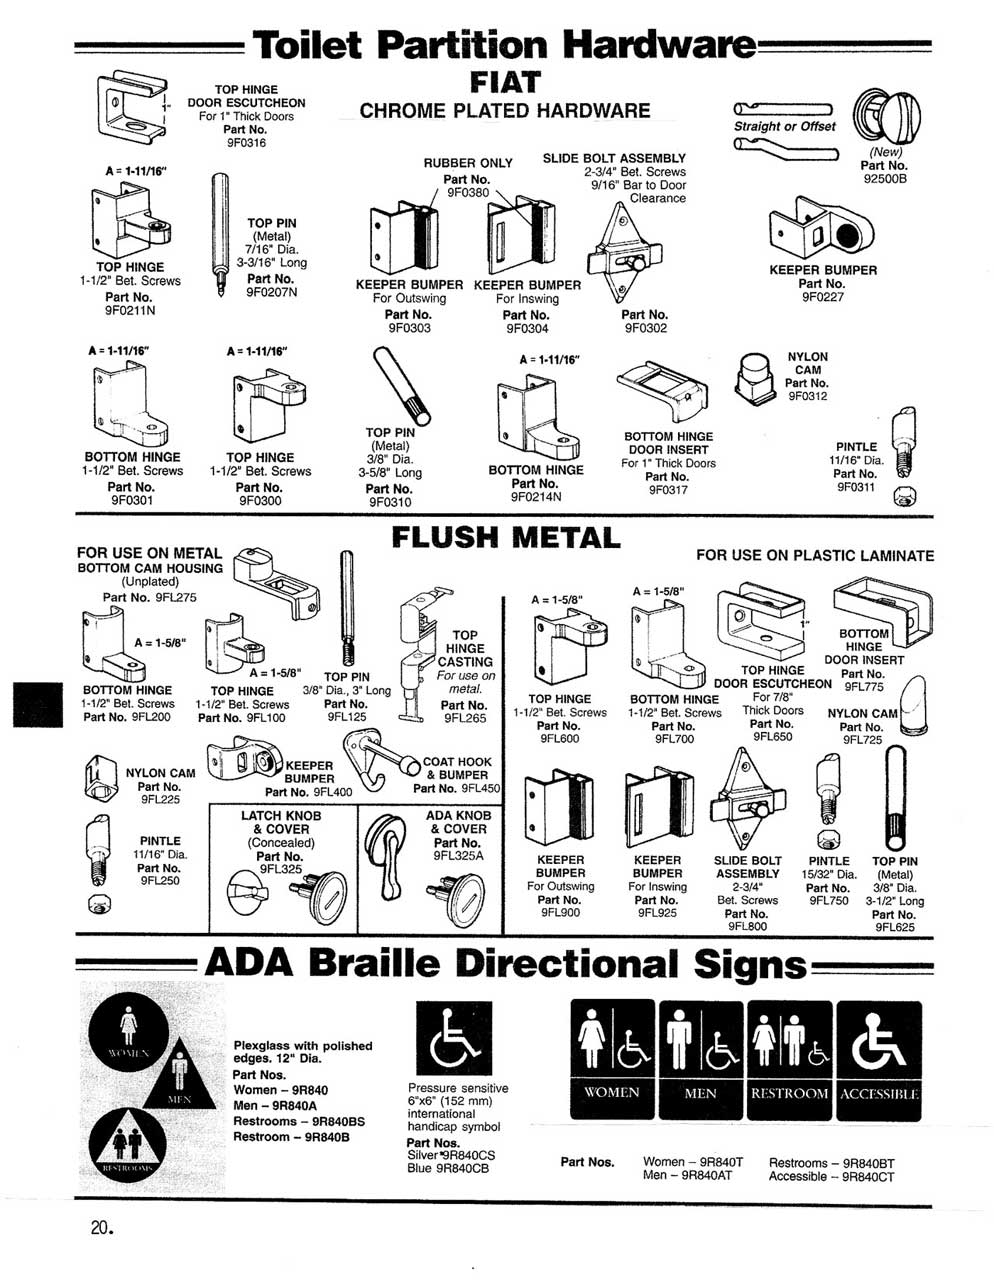 Toilet Partition Hardware   Fiat And Flush Metal; ADA Braille Directional  Signs